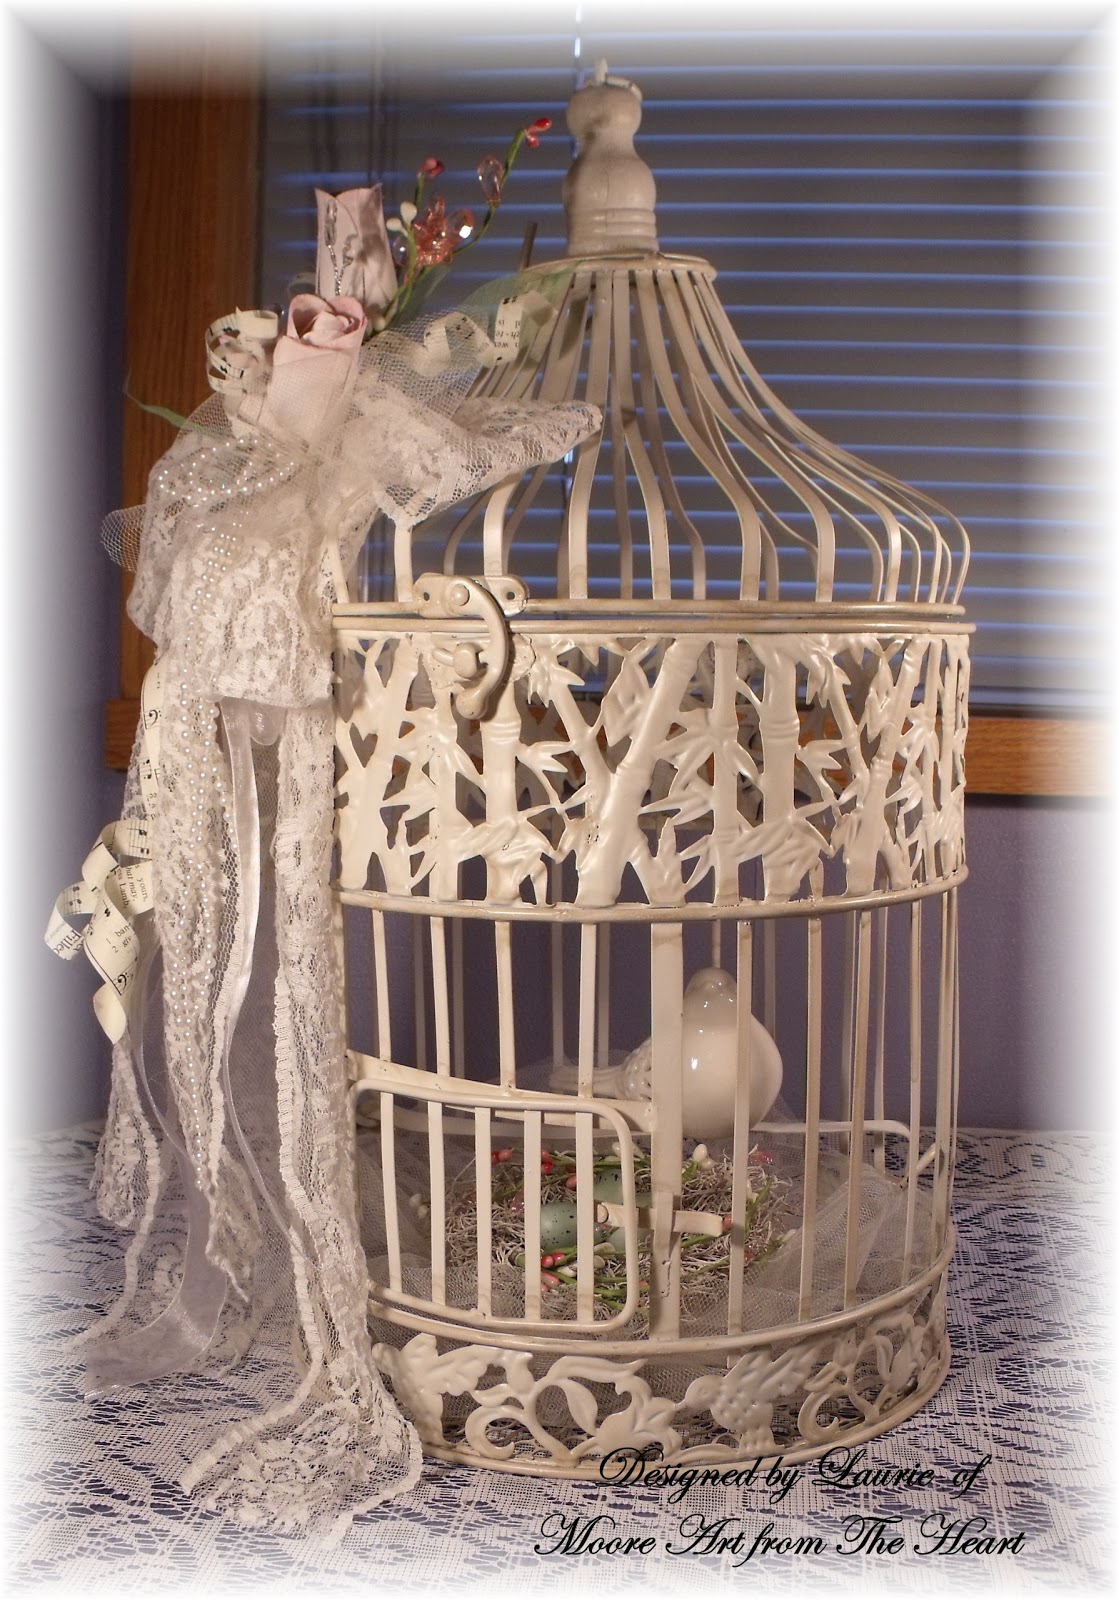 moore art from the heart vintage shabby chic birdcage. Black Bedroom Furniture Sets. Home Design Ideas